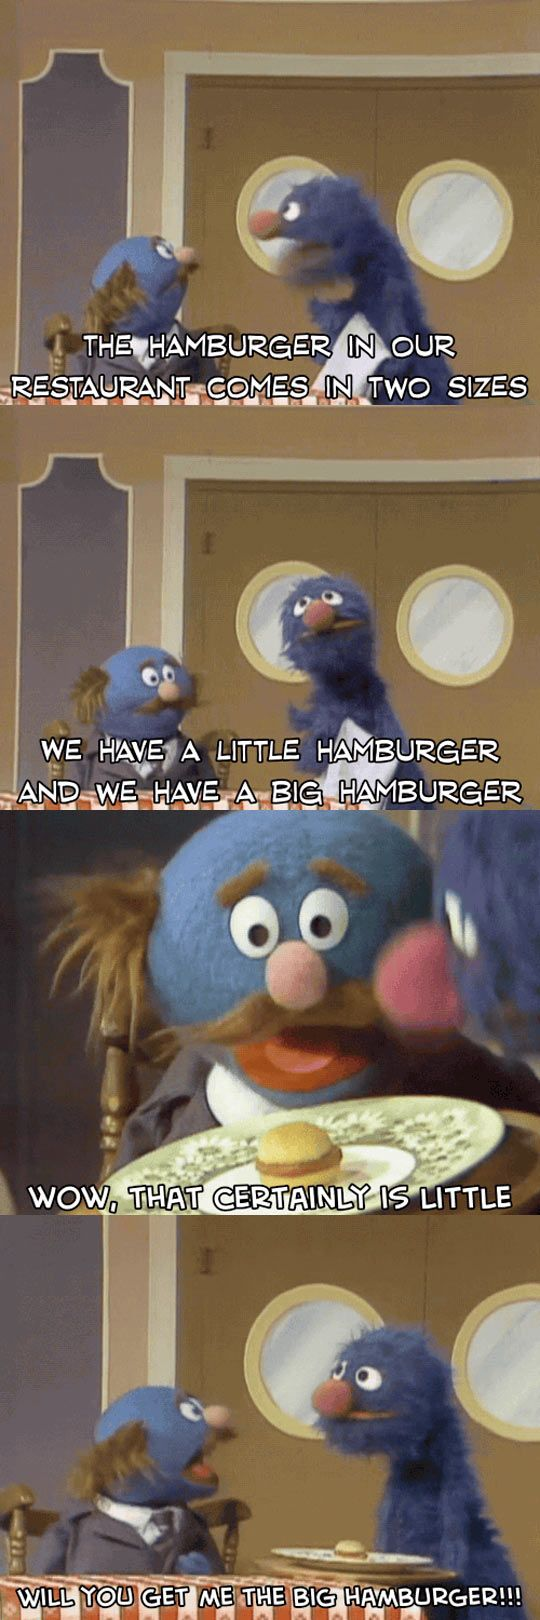 Hamburger Comes In Two Sizes, Grover, obviously the best Sesame Street character ever.